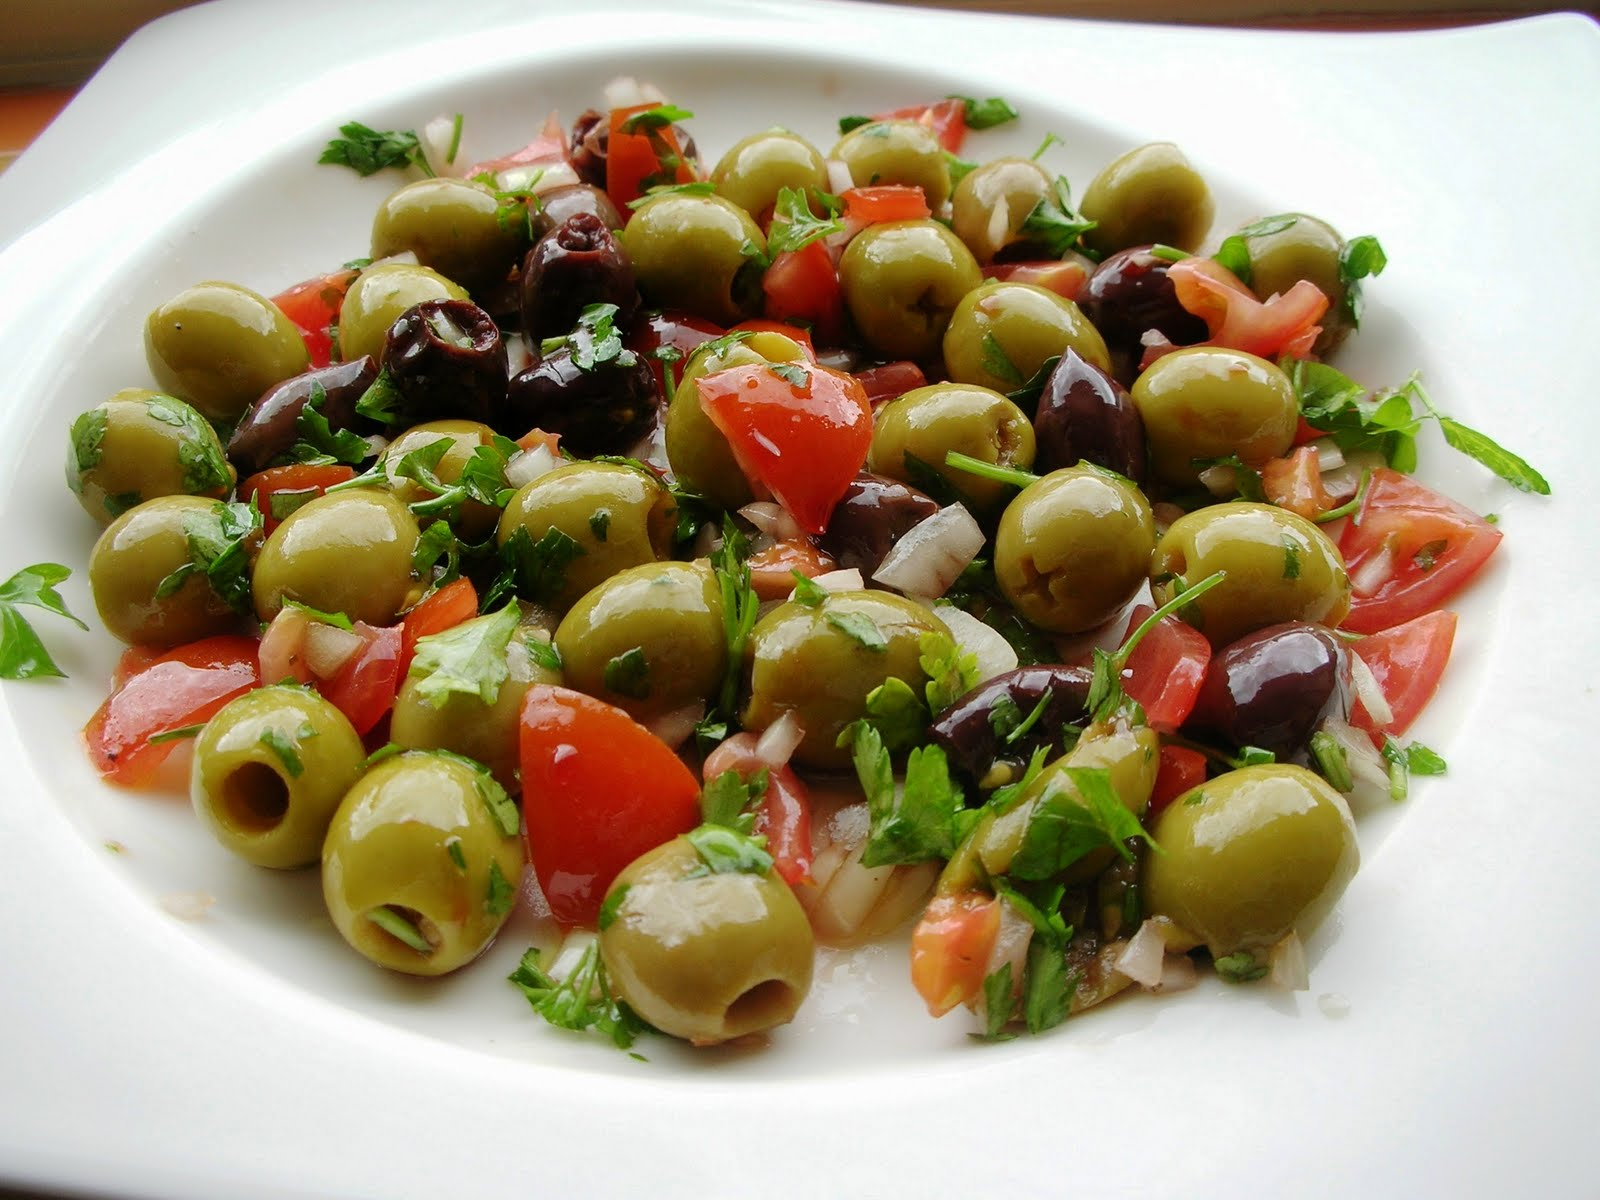 OLIVE OIL & SALAD OLIVES